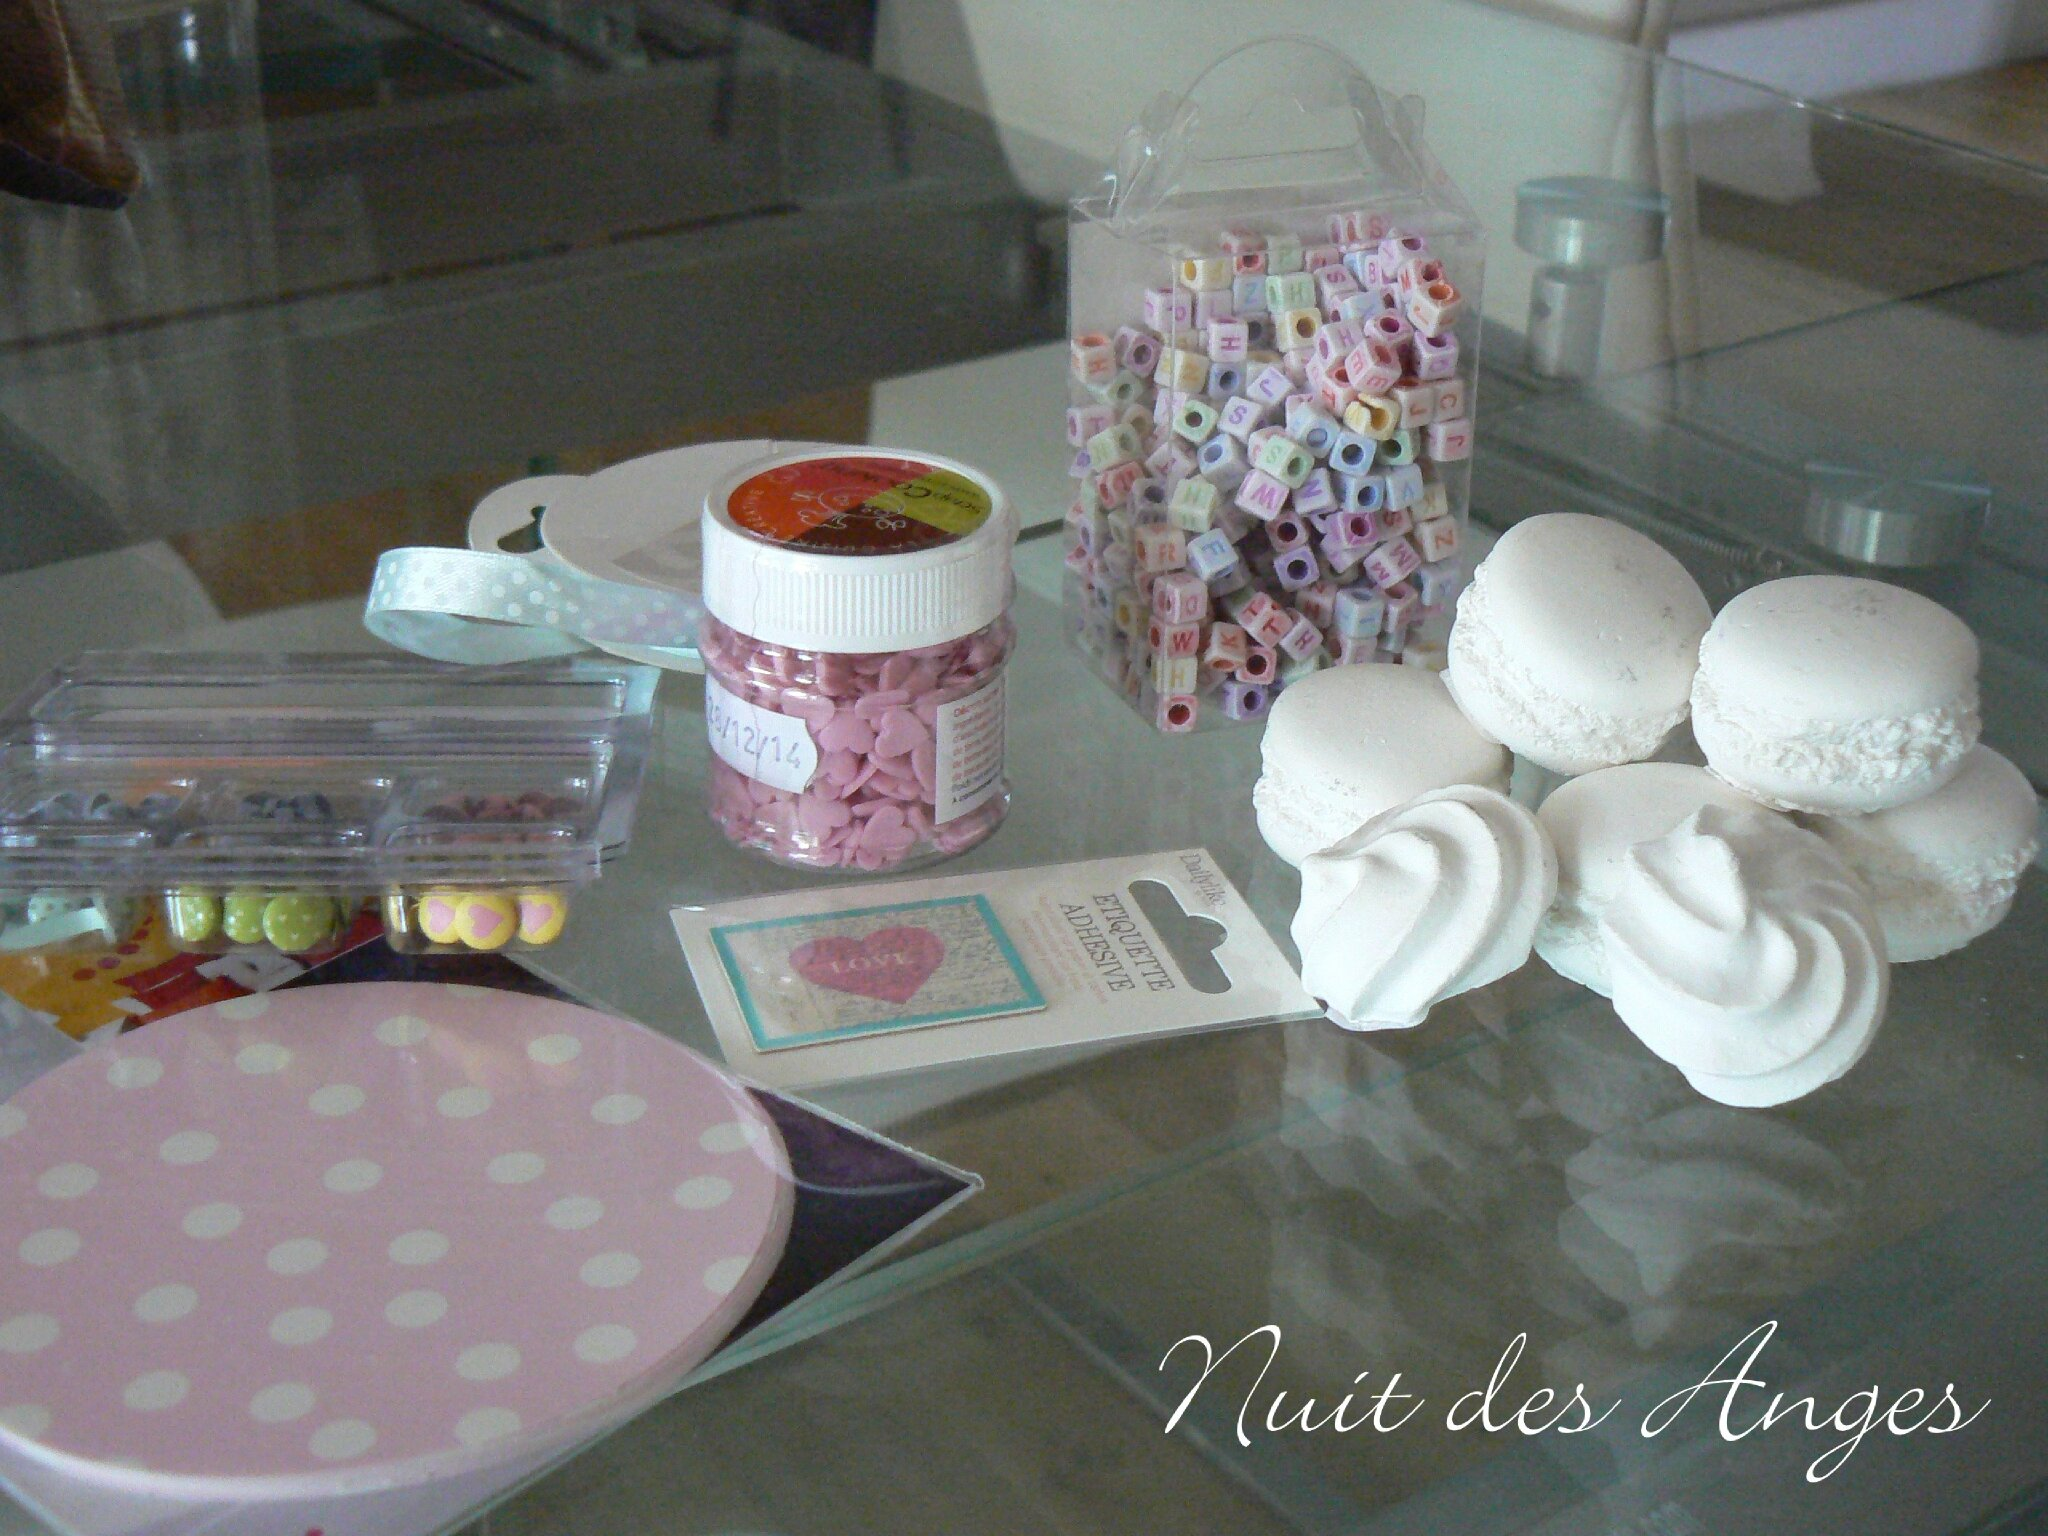 D coration de table gourmandise nuit des anges for Deco table gourmandise